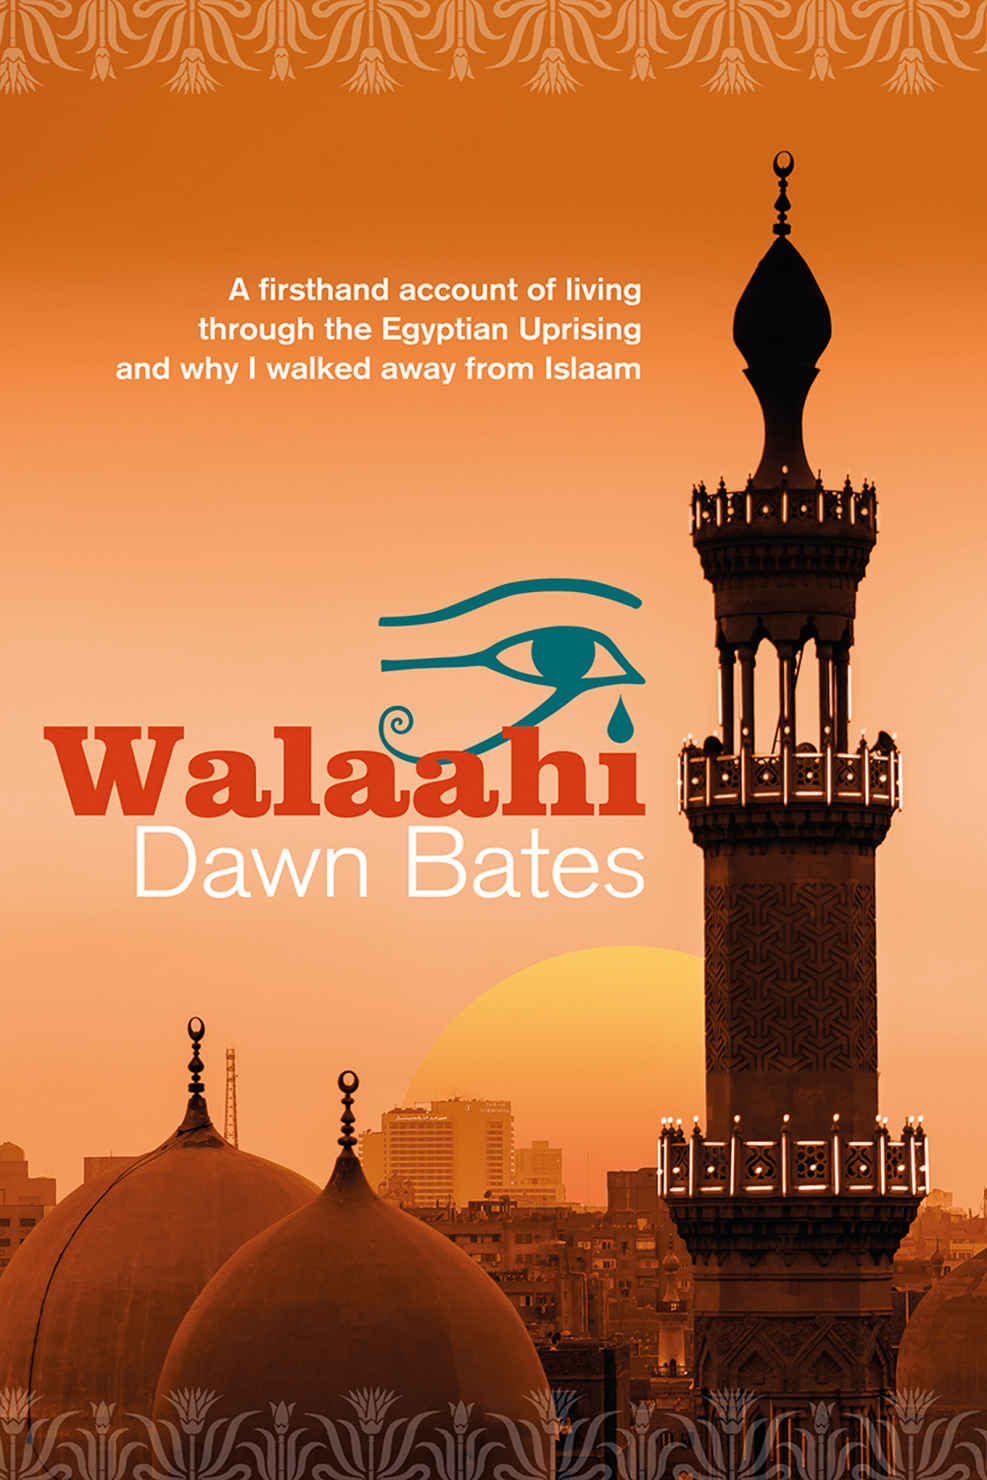 Walaahi by Dawn Bates